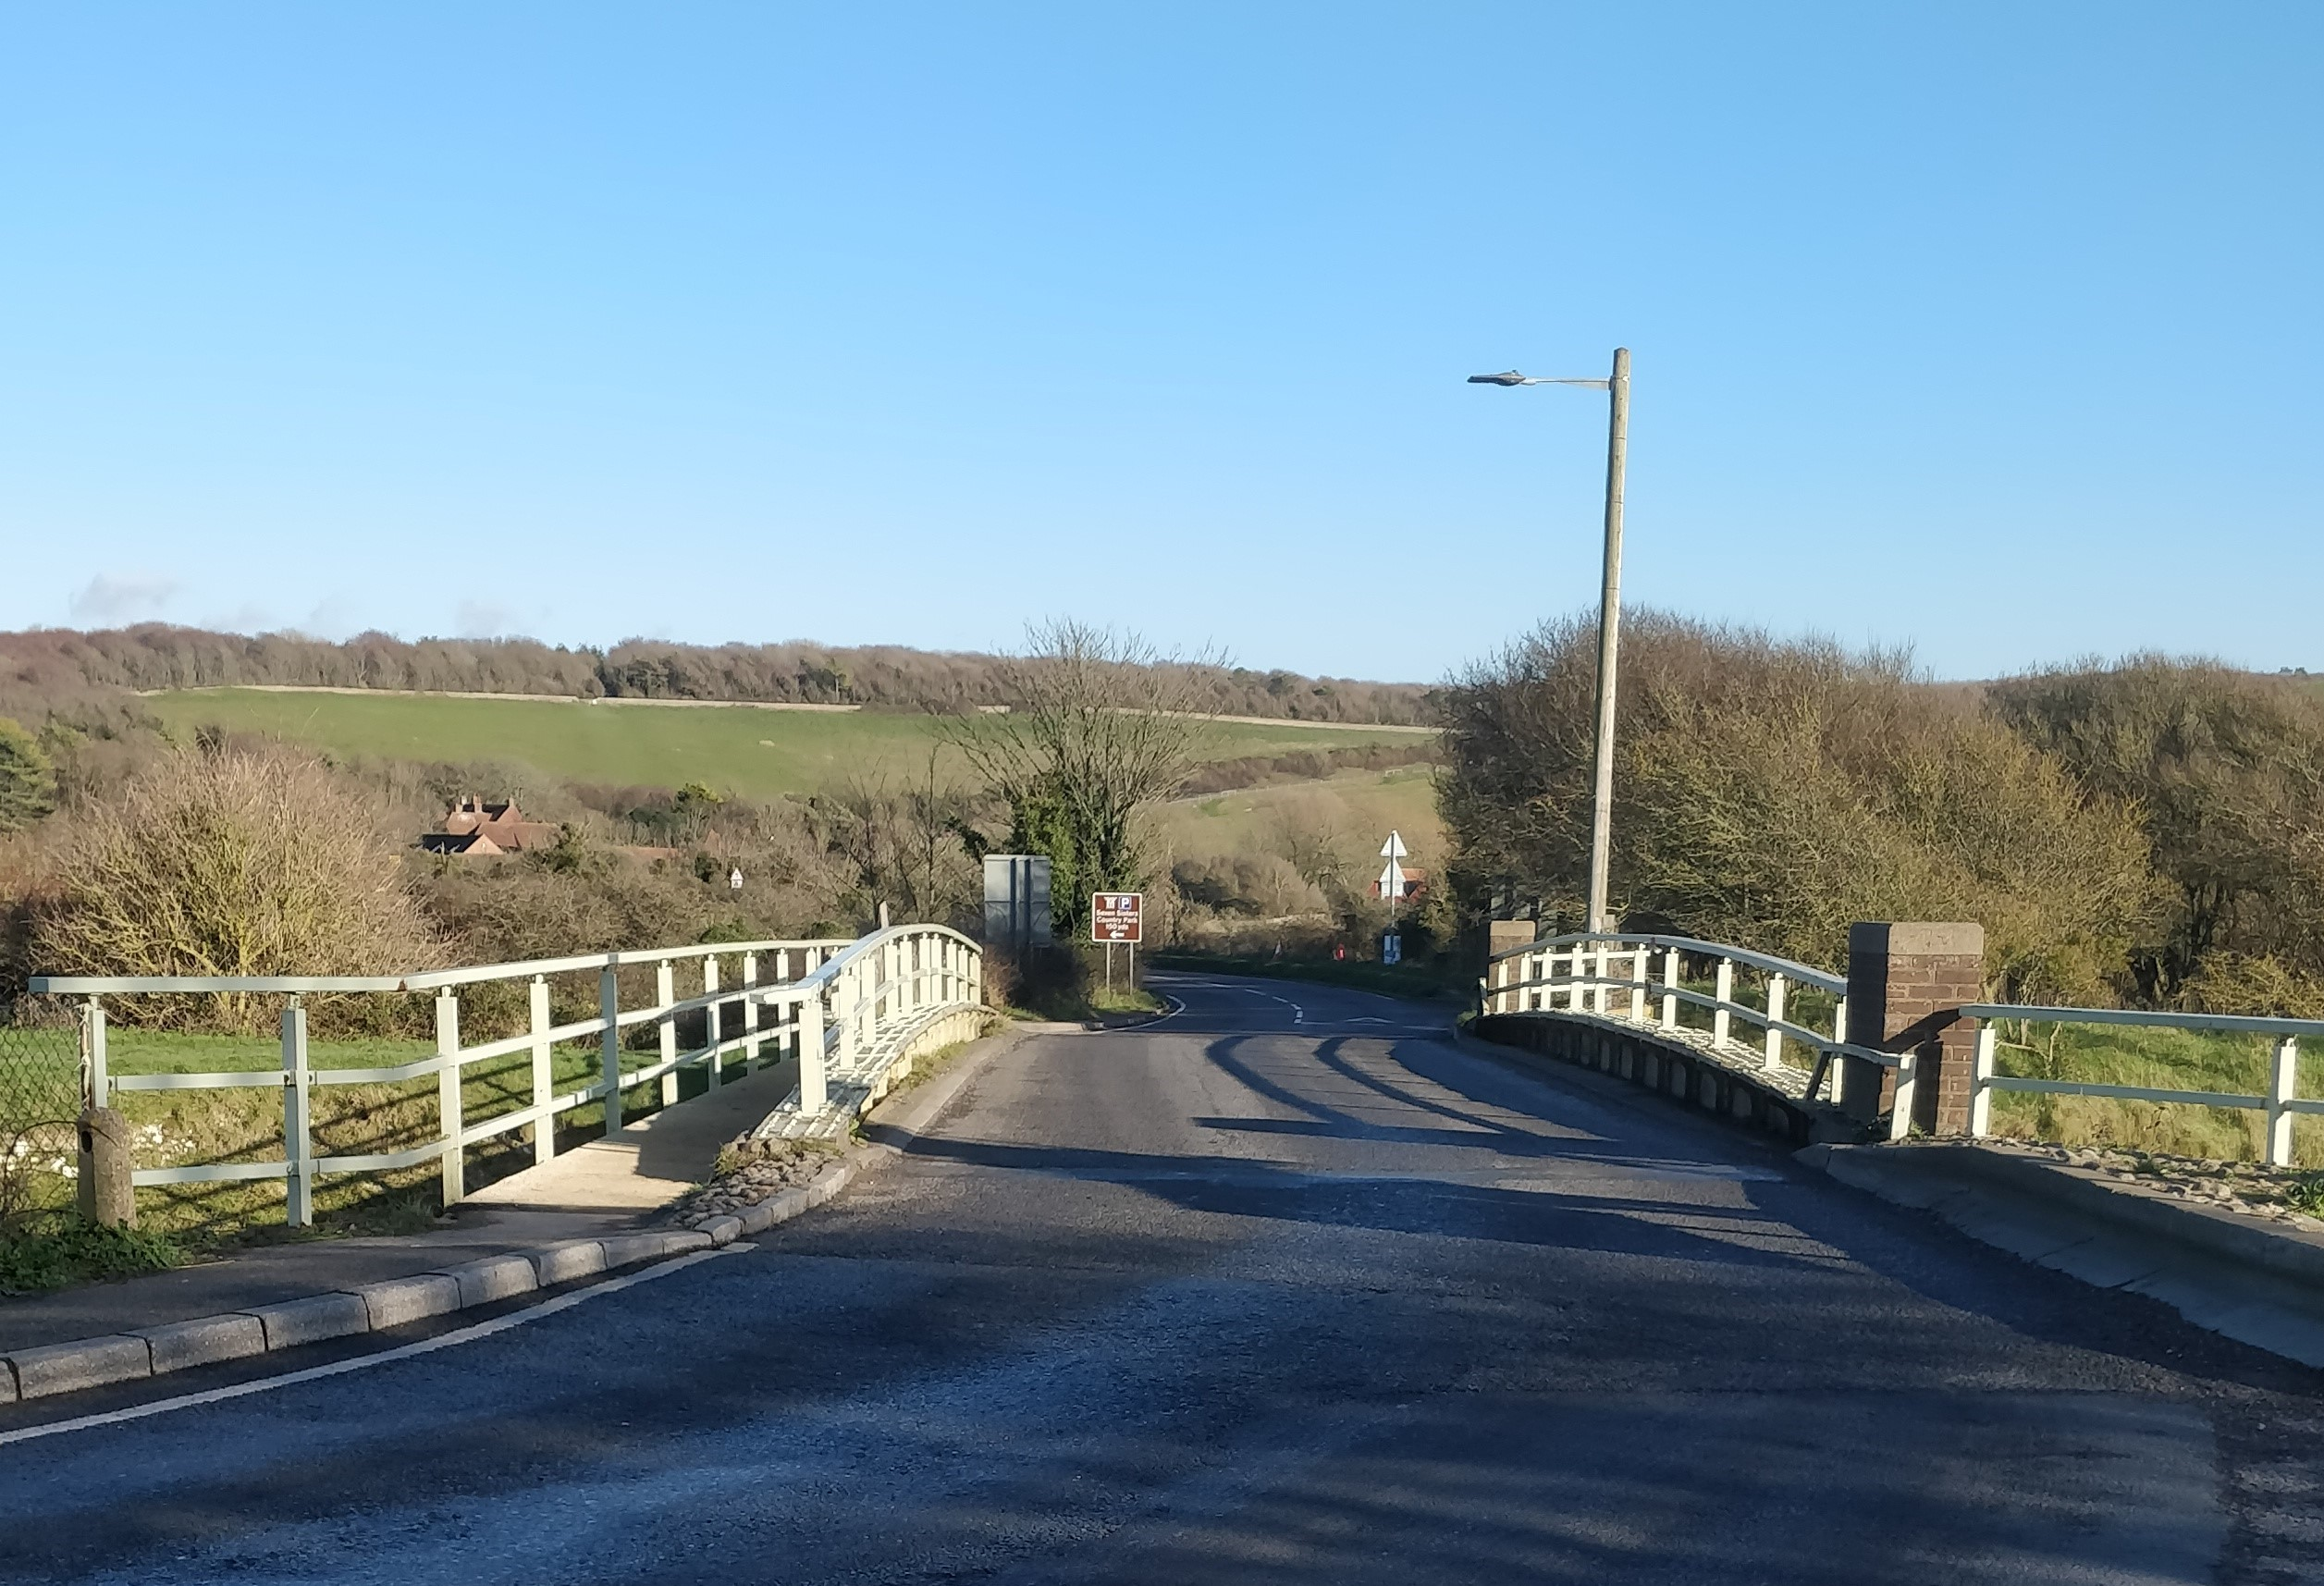 Exceat Bridge – £5 million bridge but NO improvement for cycling, walking and horse riders